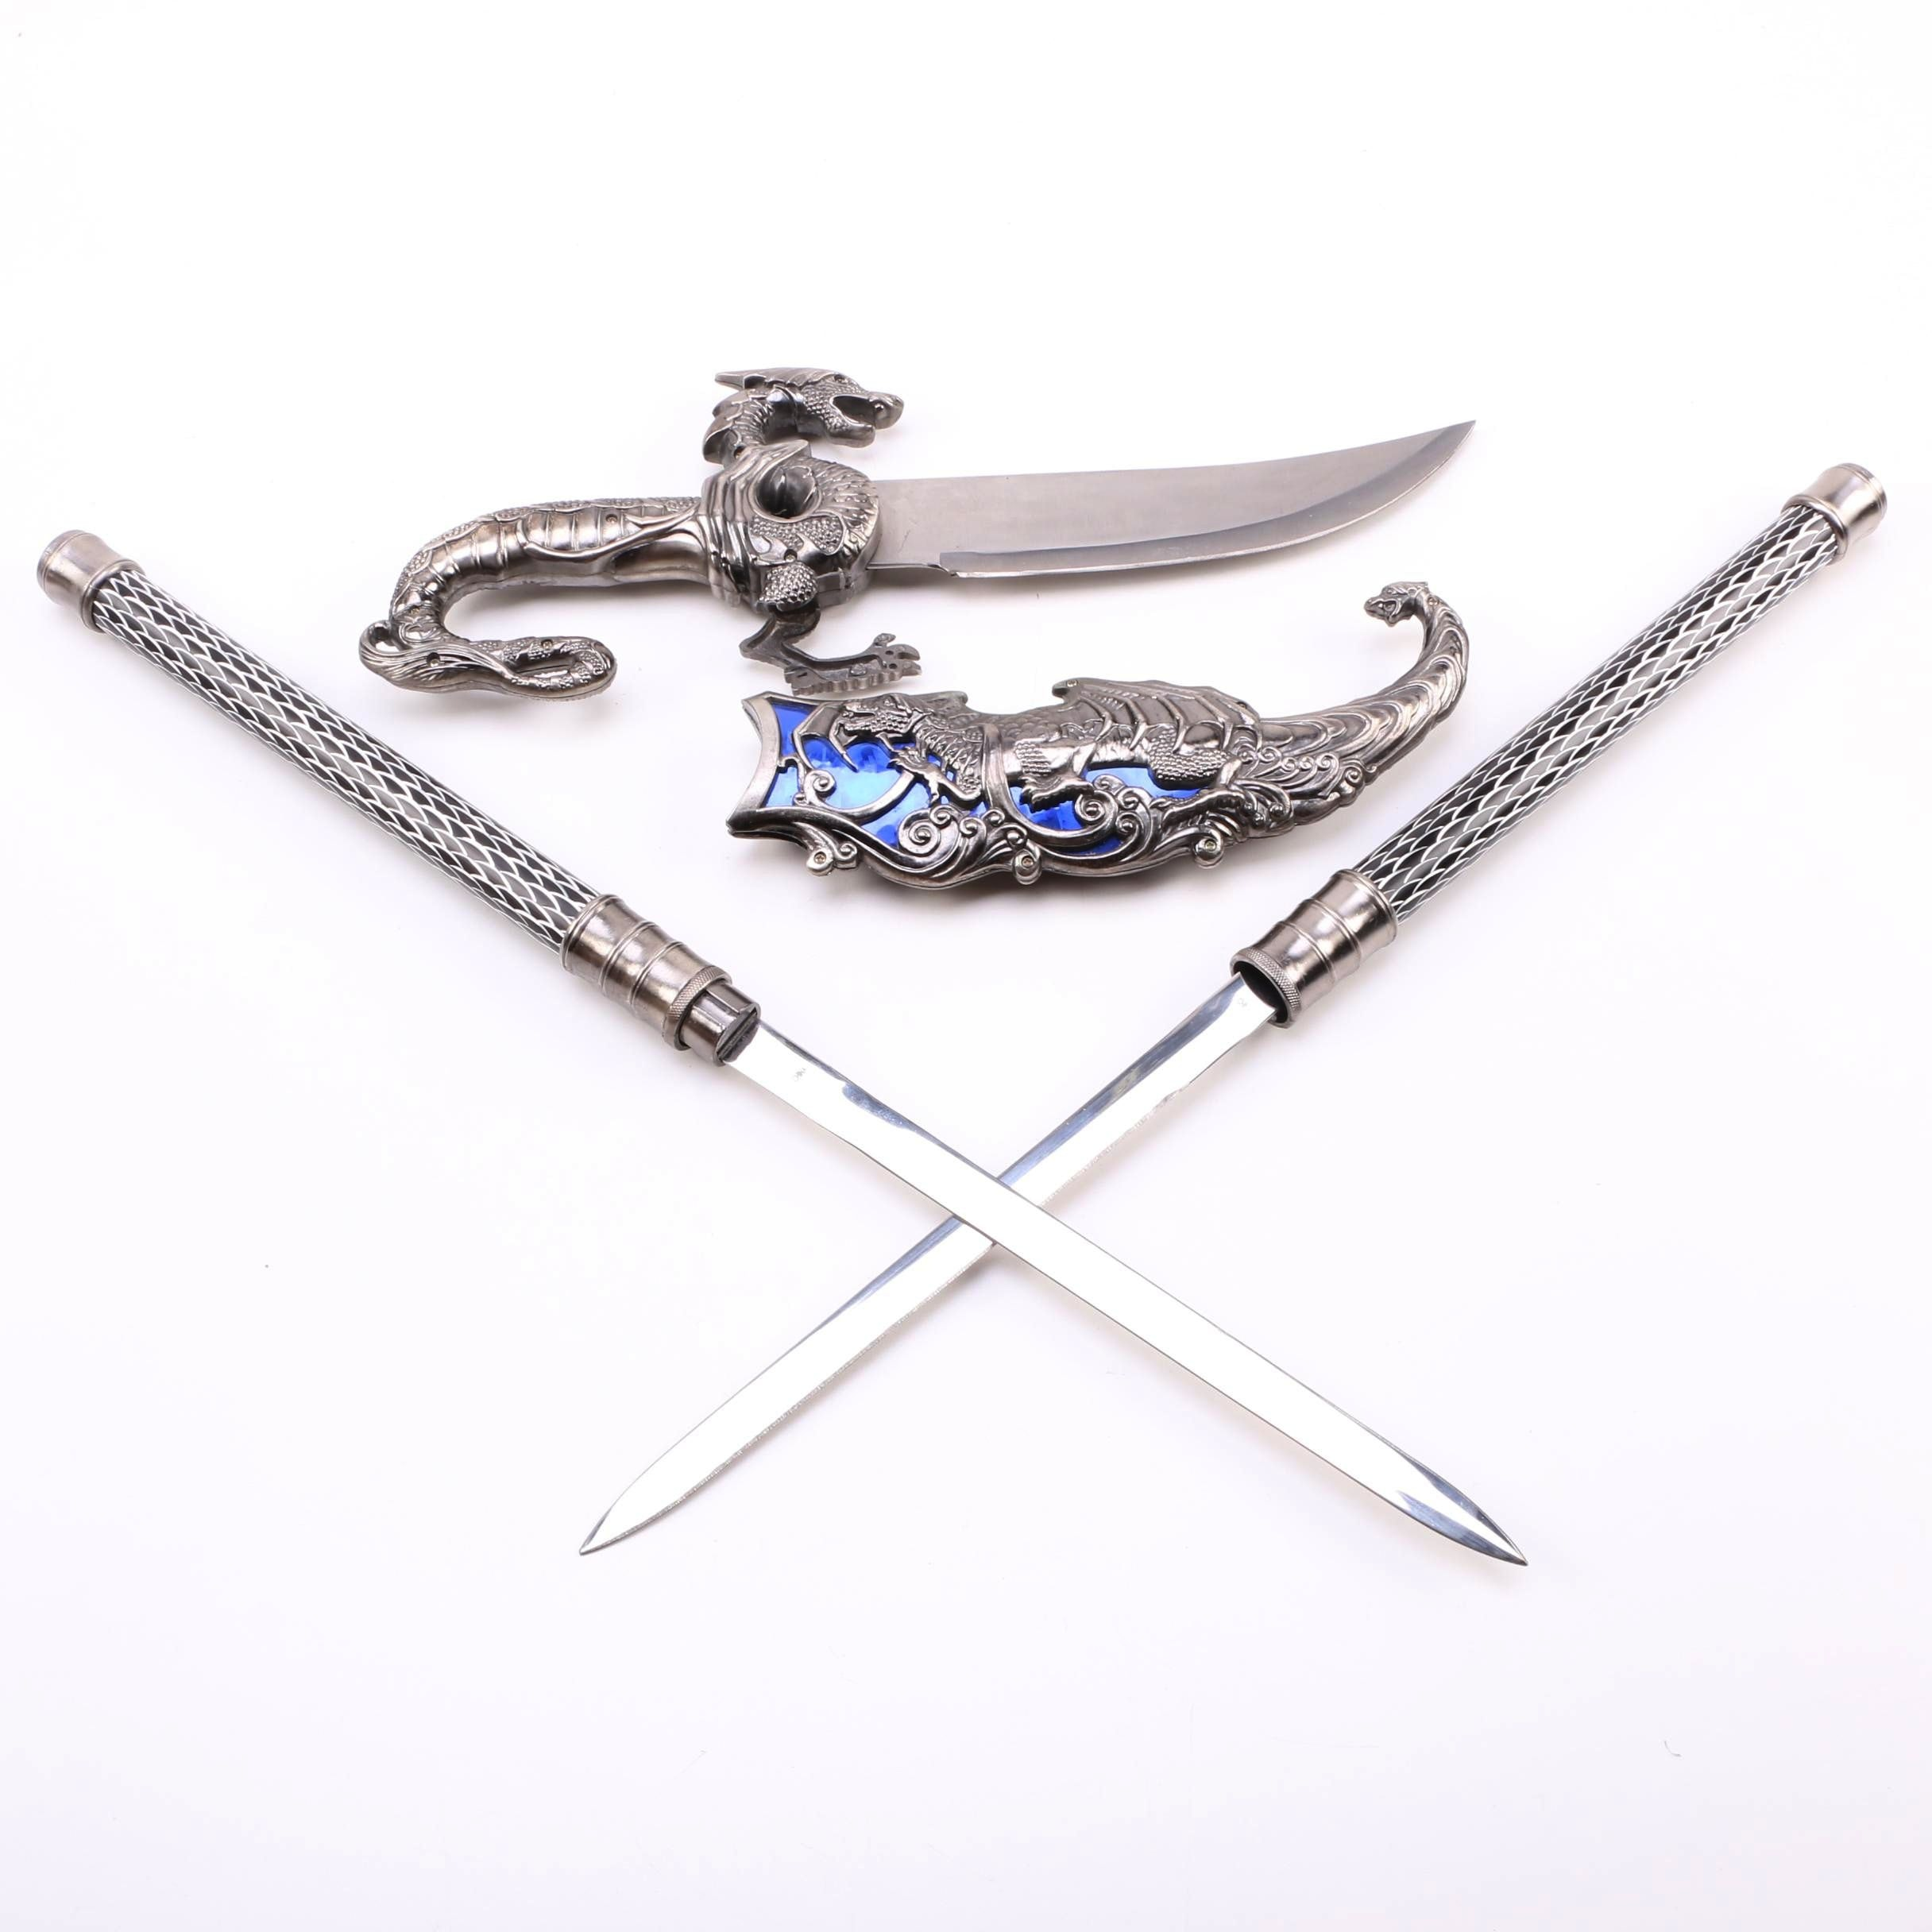 Dragon Themed Dagger and Pair of Matching Daggers